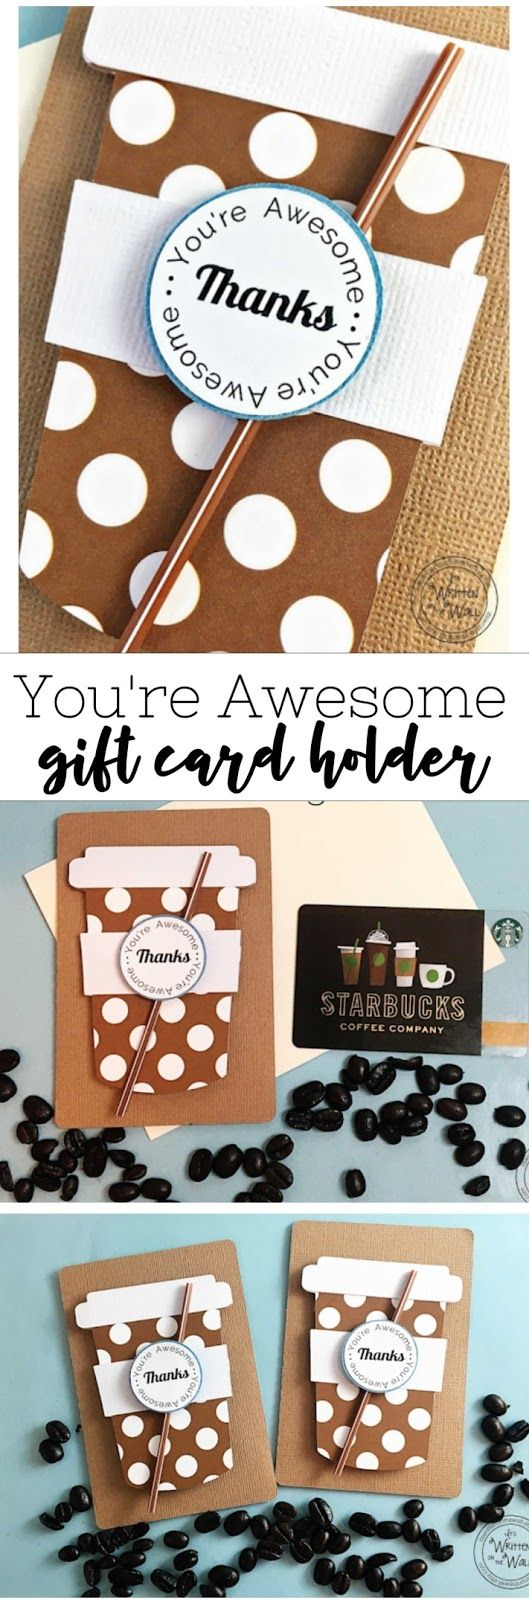 You're Awesome Gift Card Holder-Starbucks Gift Card